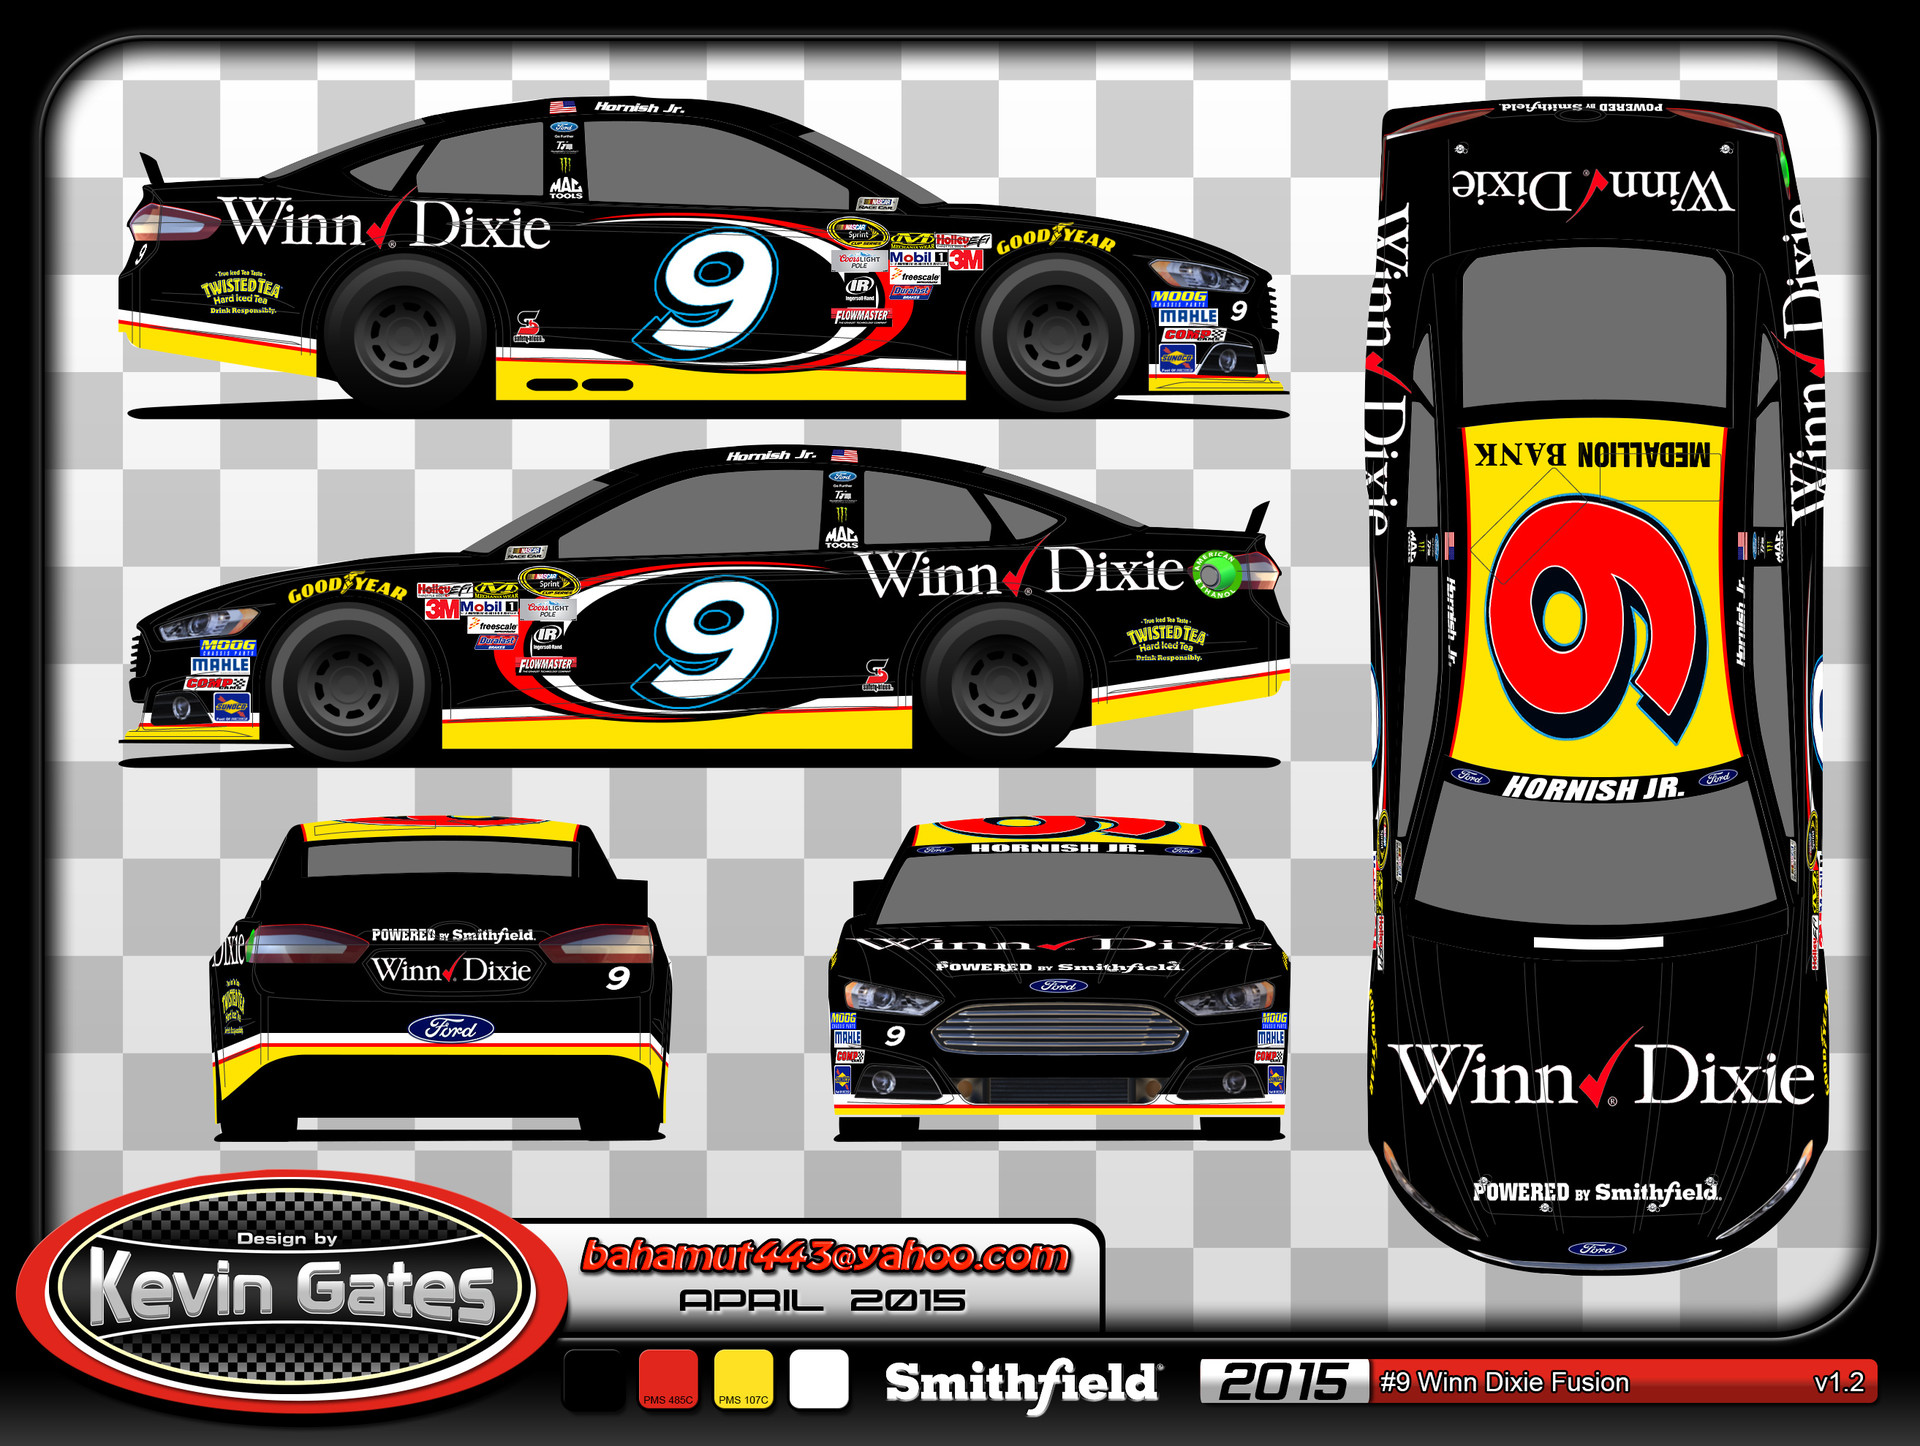 Original vector art of the 2015 #9 Winn-Dixie Ford Fusion